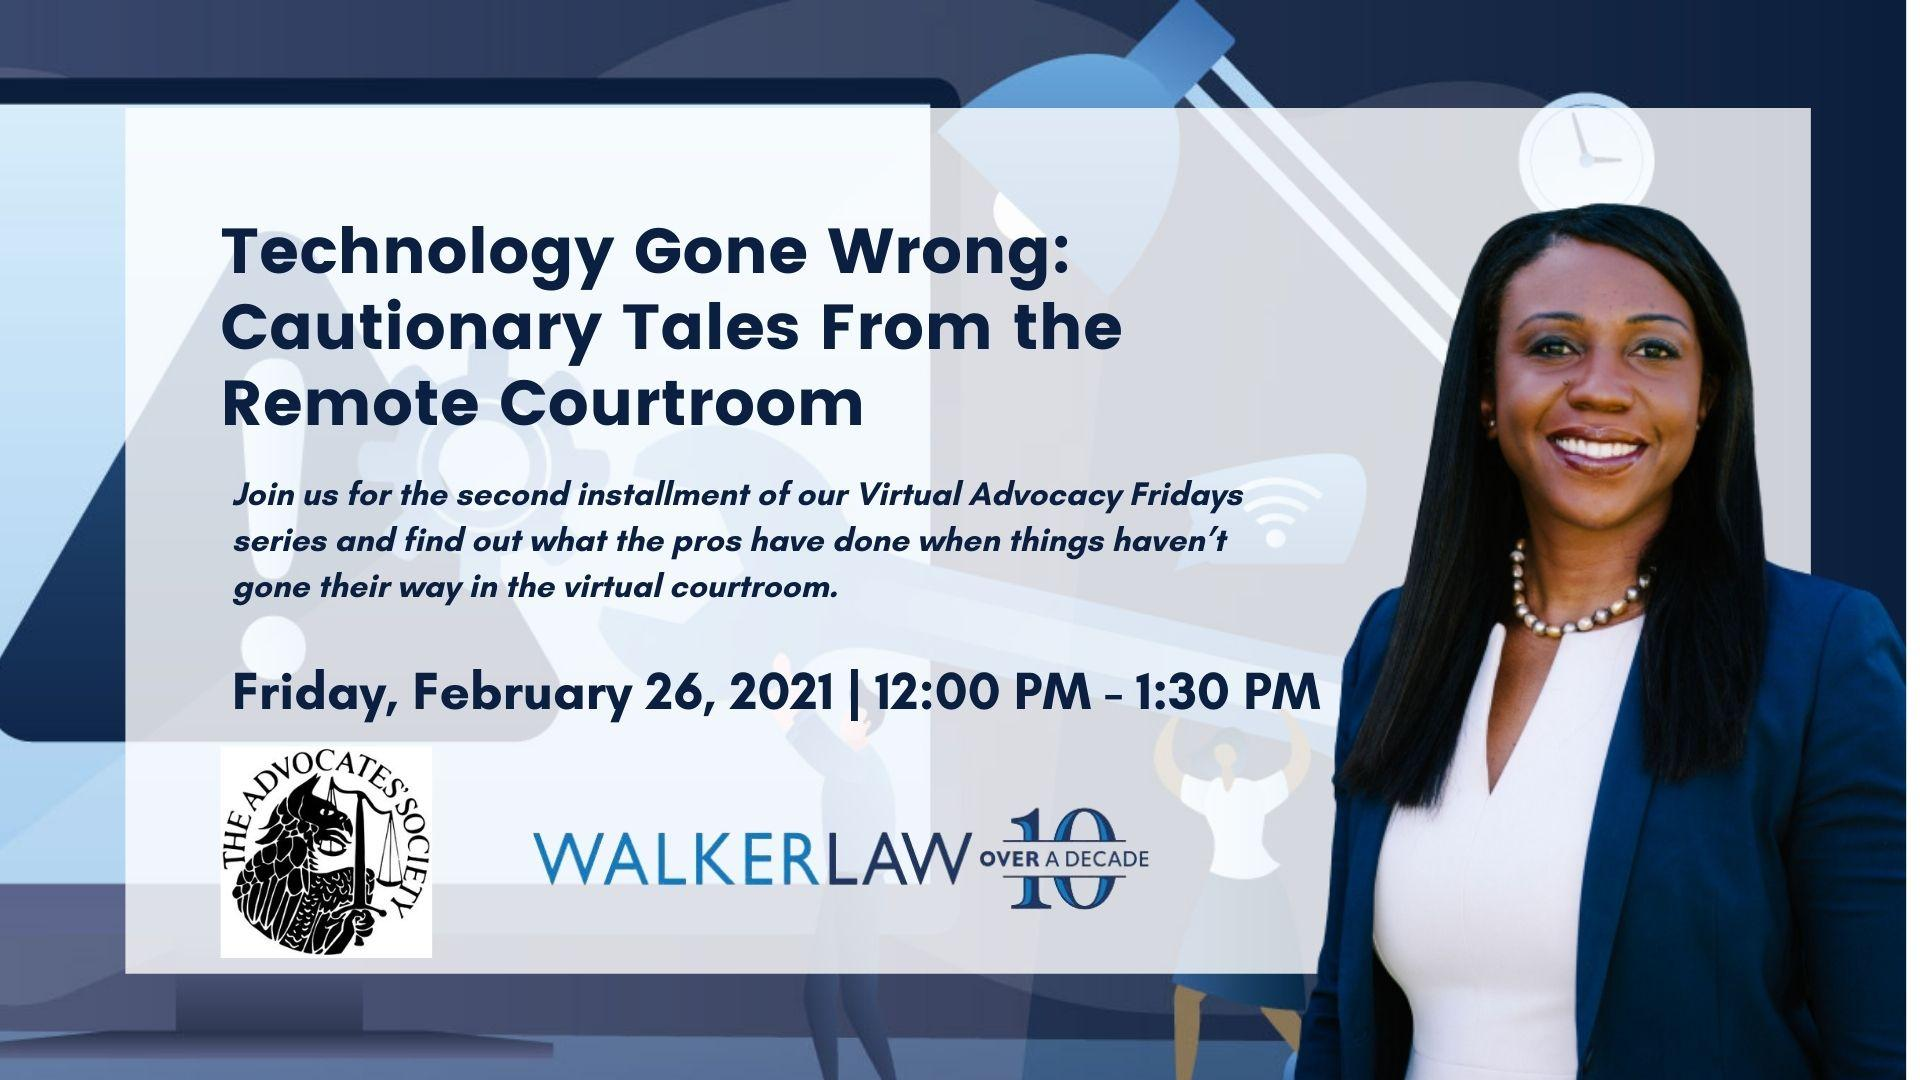 Technology Gone Wrong: Cautionary Tales From the Remote Courtroom